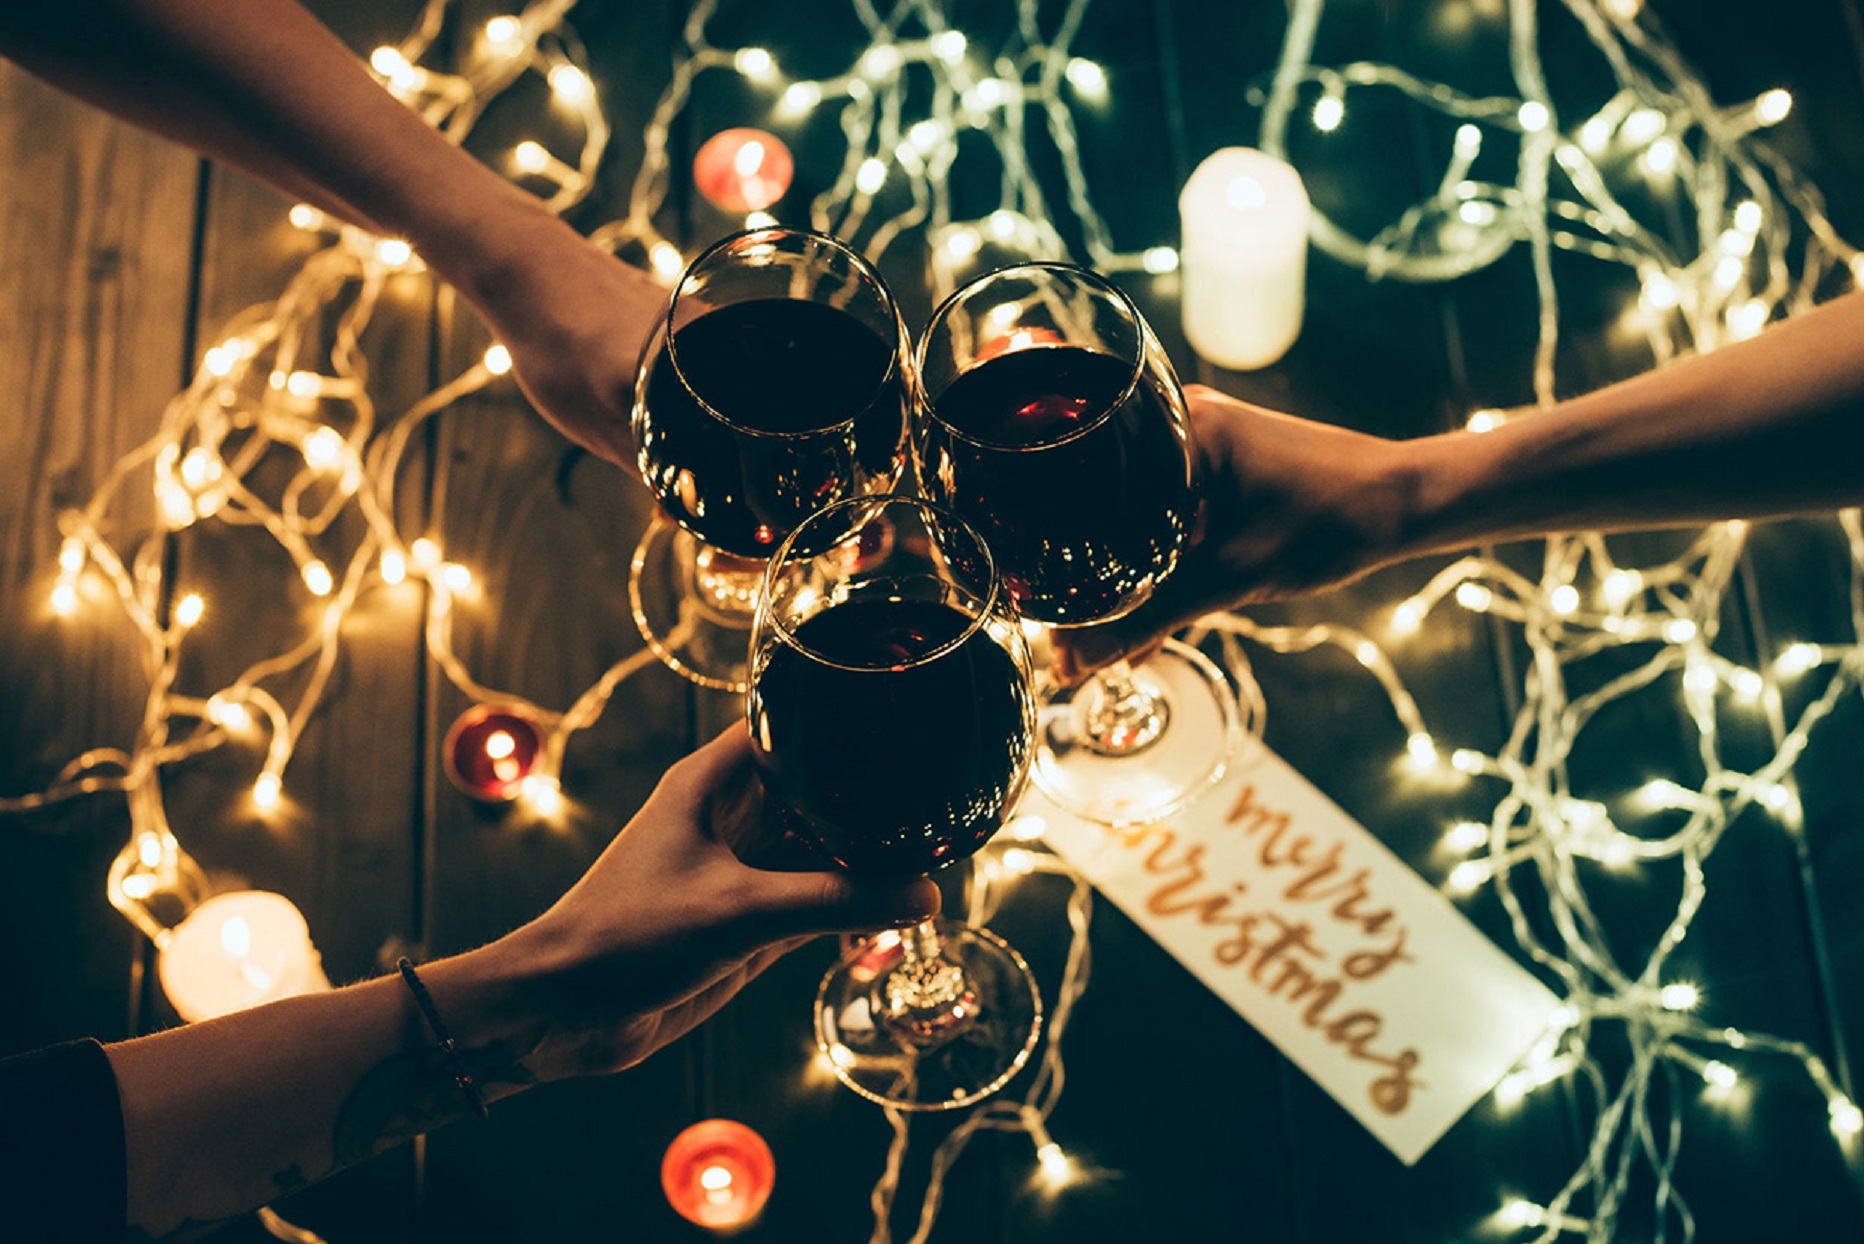 Red Wine Glasses Cheers String Lights Background